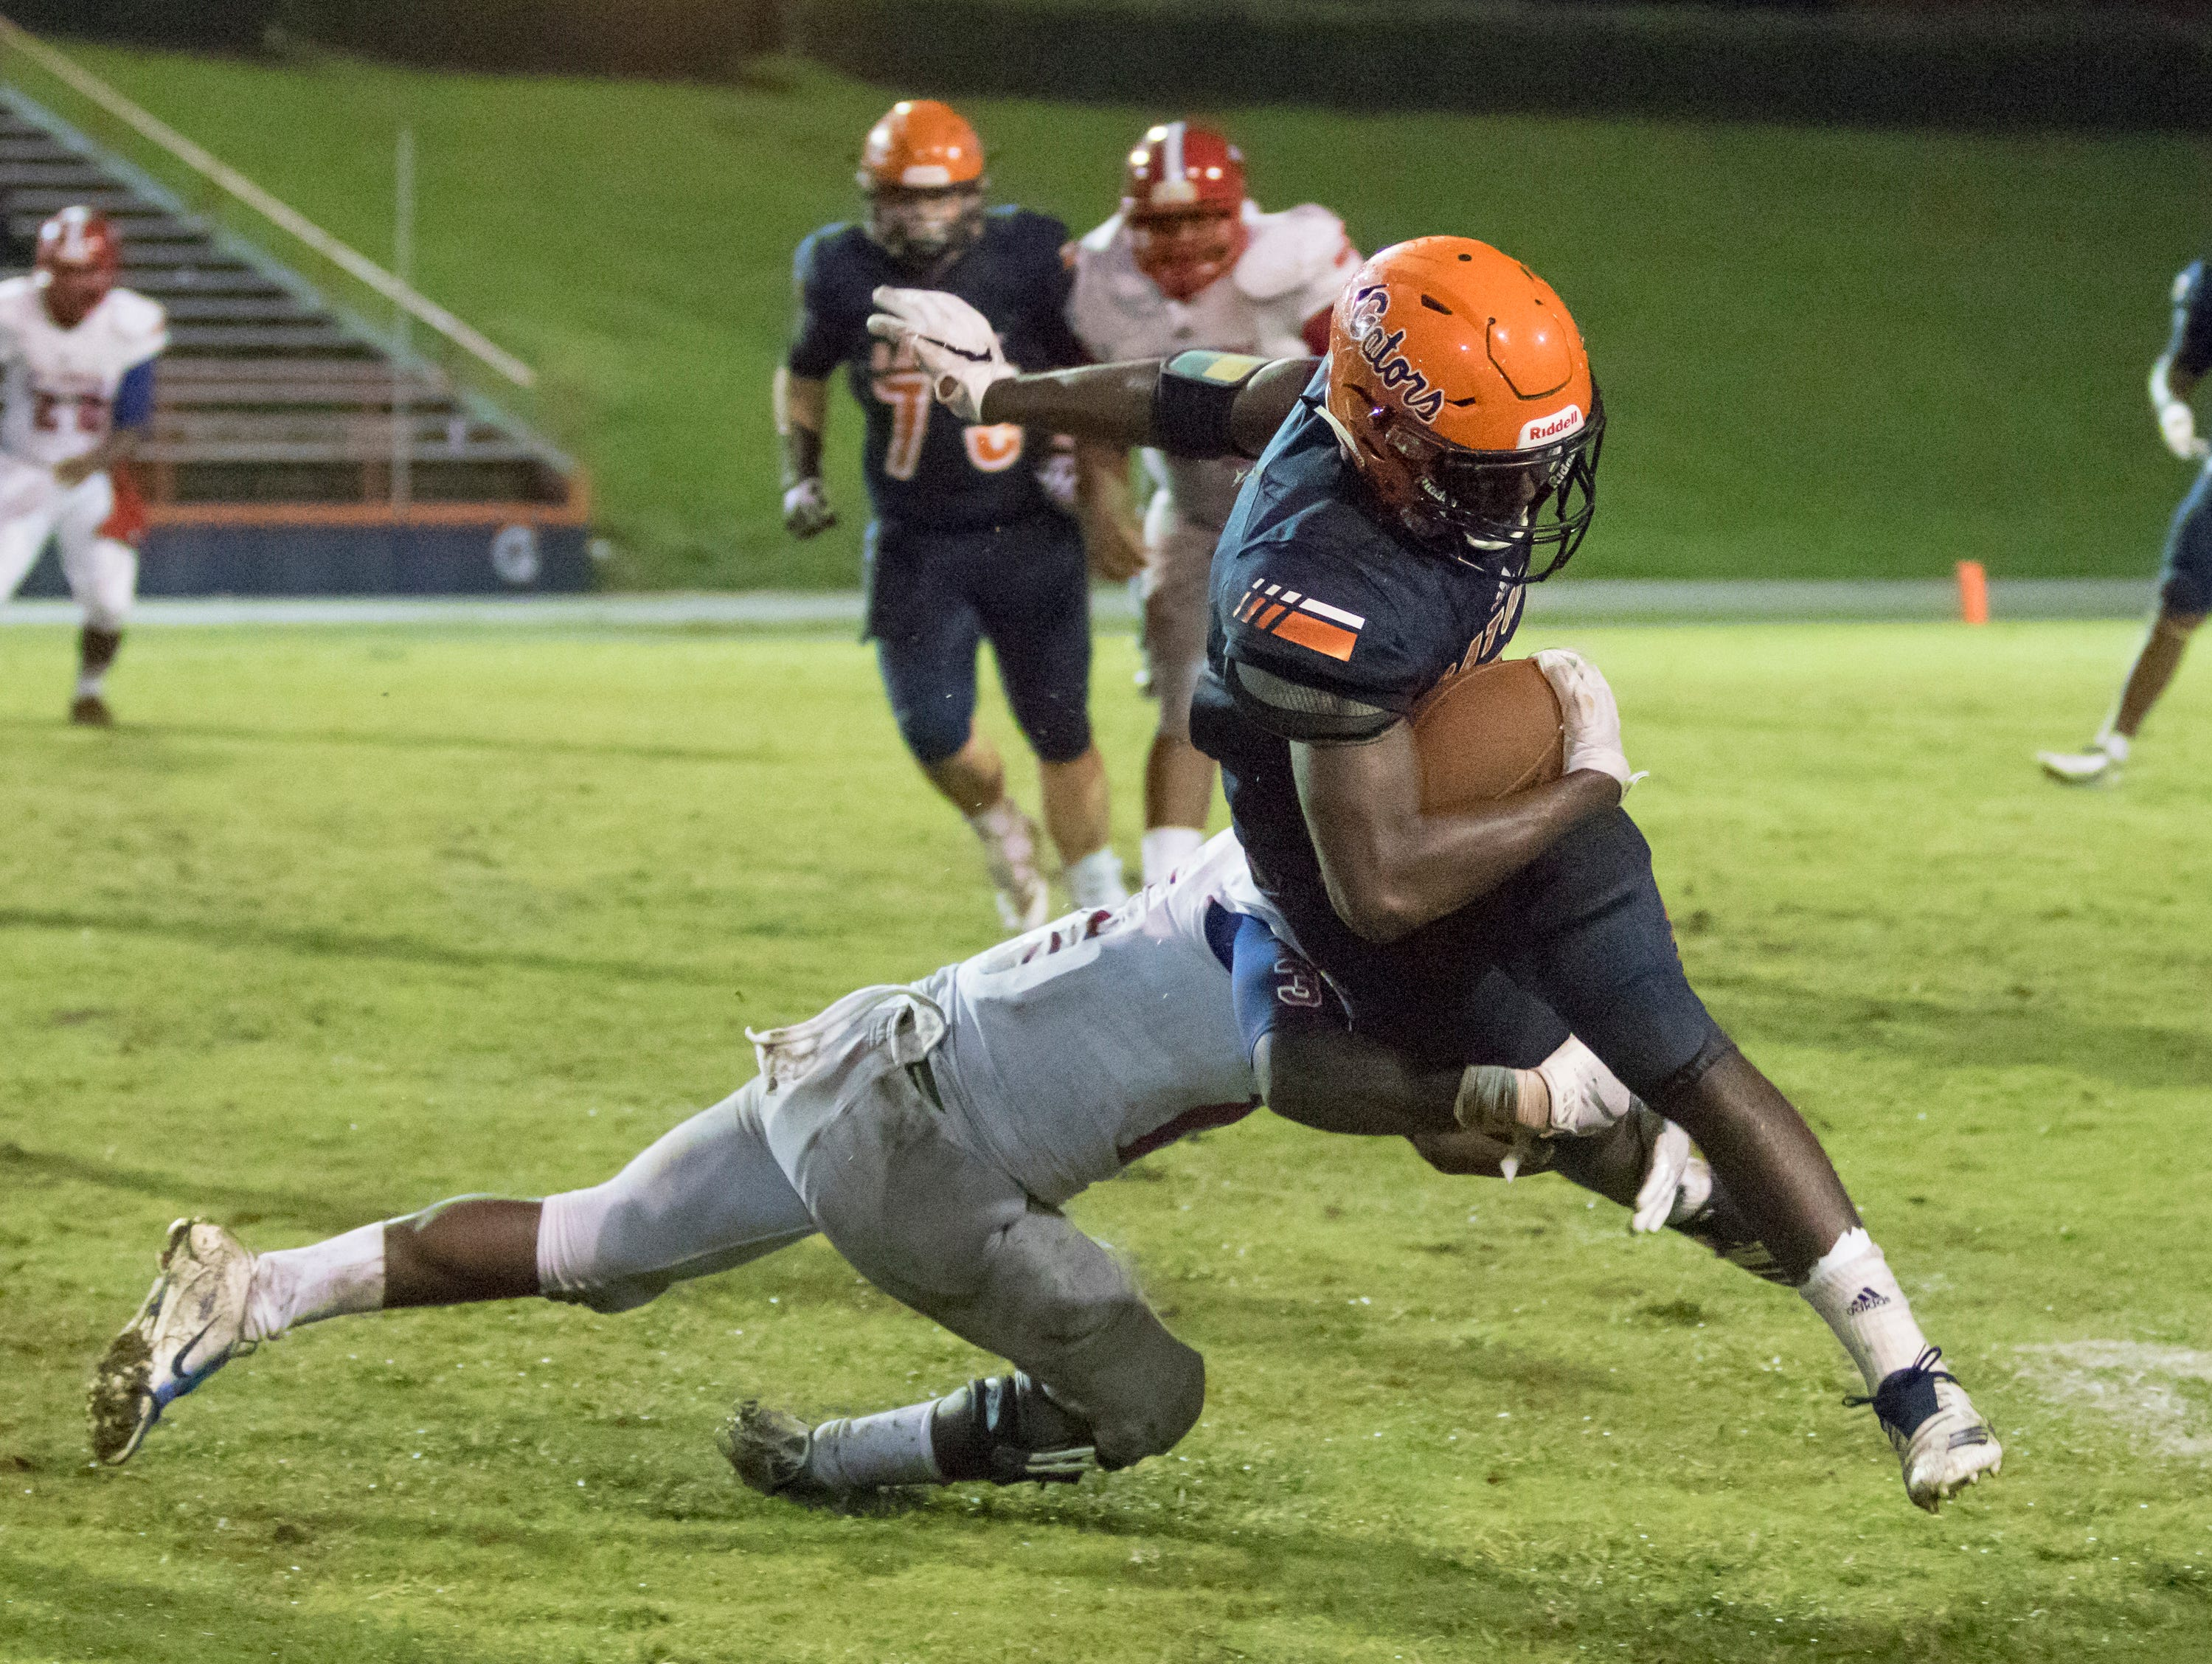 Mitrez Rawls (15) wraps up Frank Peasent (1) during the Pine Forest vs Escambia football game at Escambia High School in Pensacola on Friday, September 28, 2018.